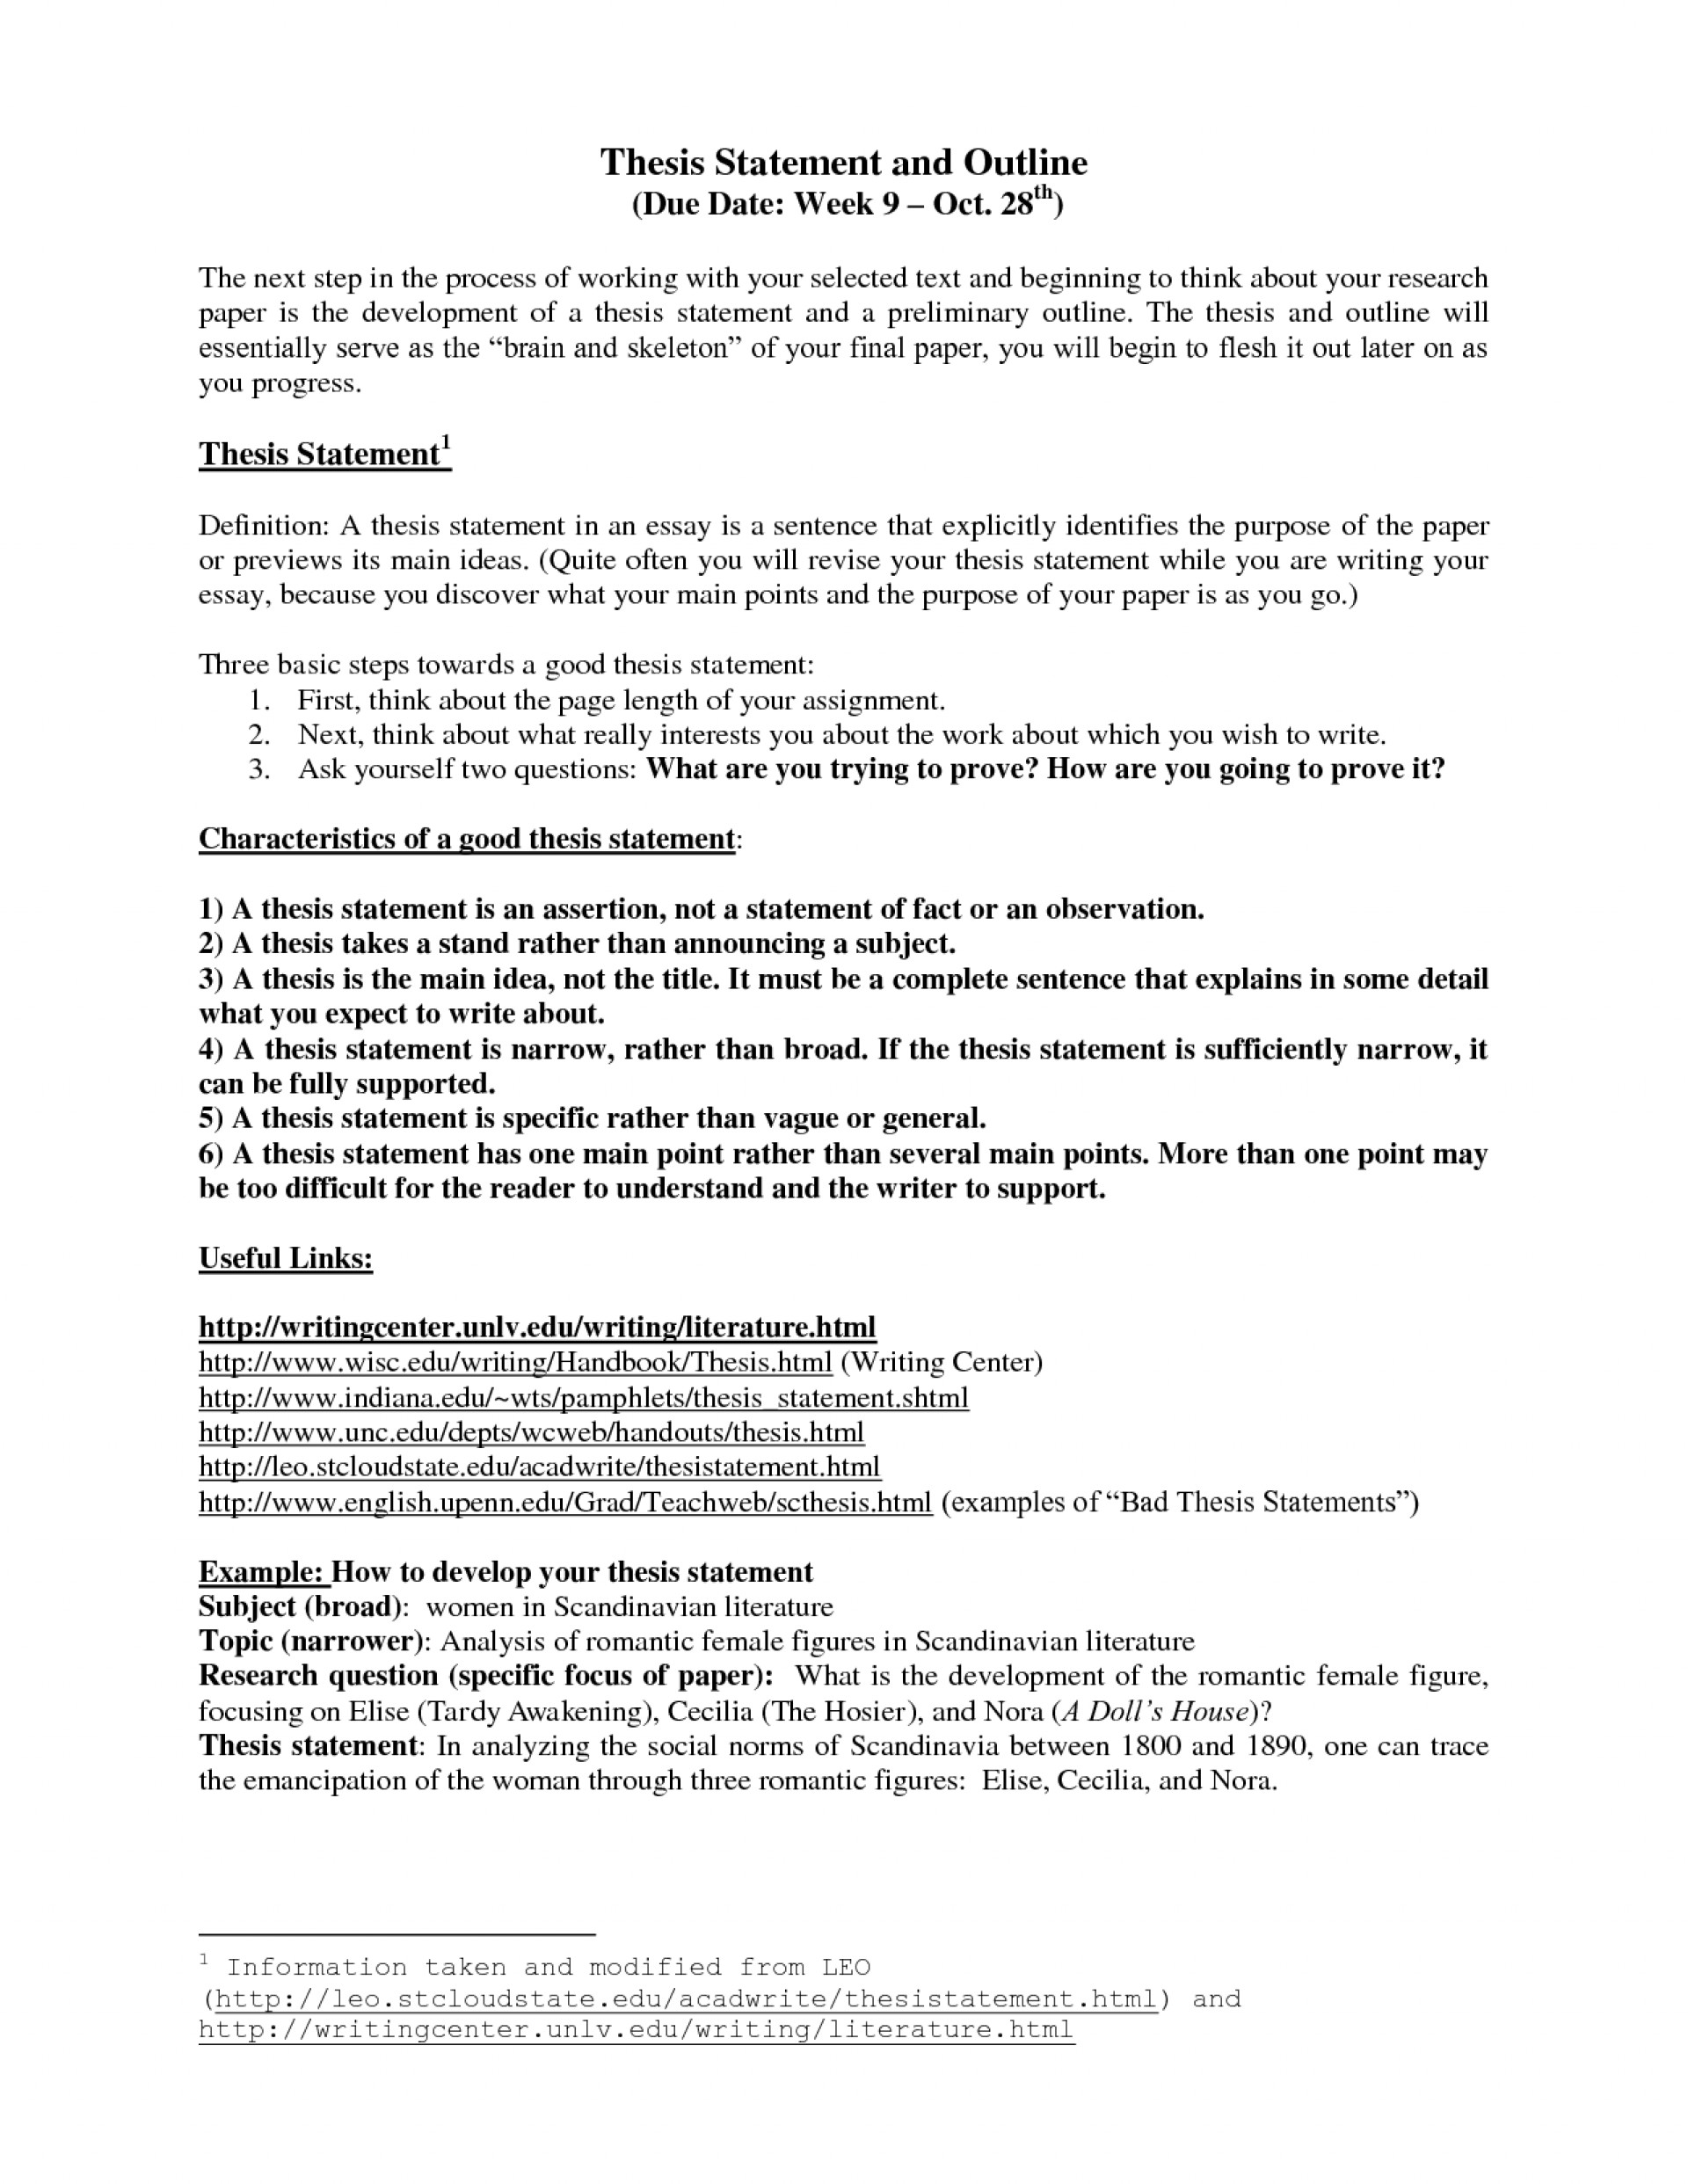 018 Thesis Statement And Outline Template Wx8nmdez Research Paper Museumlegs